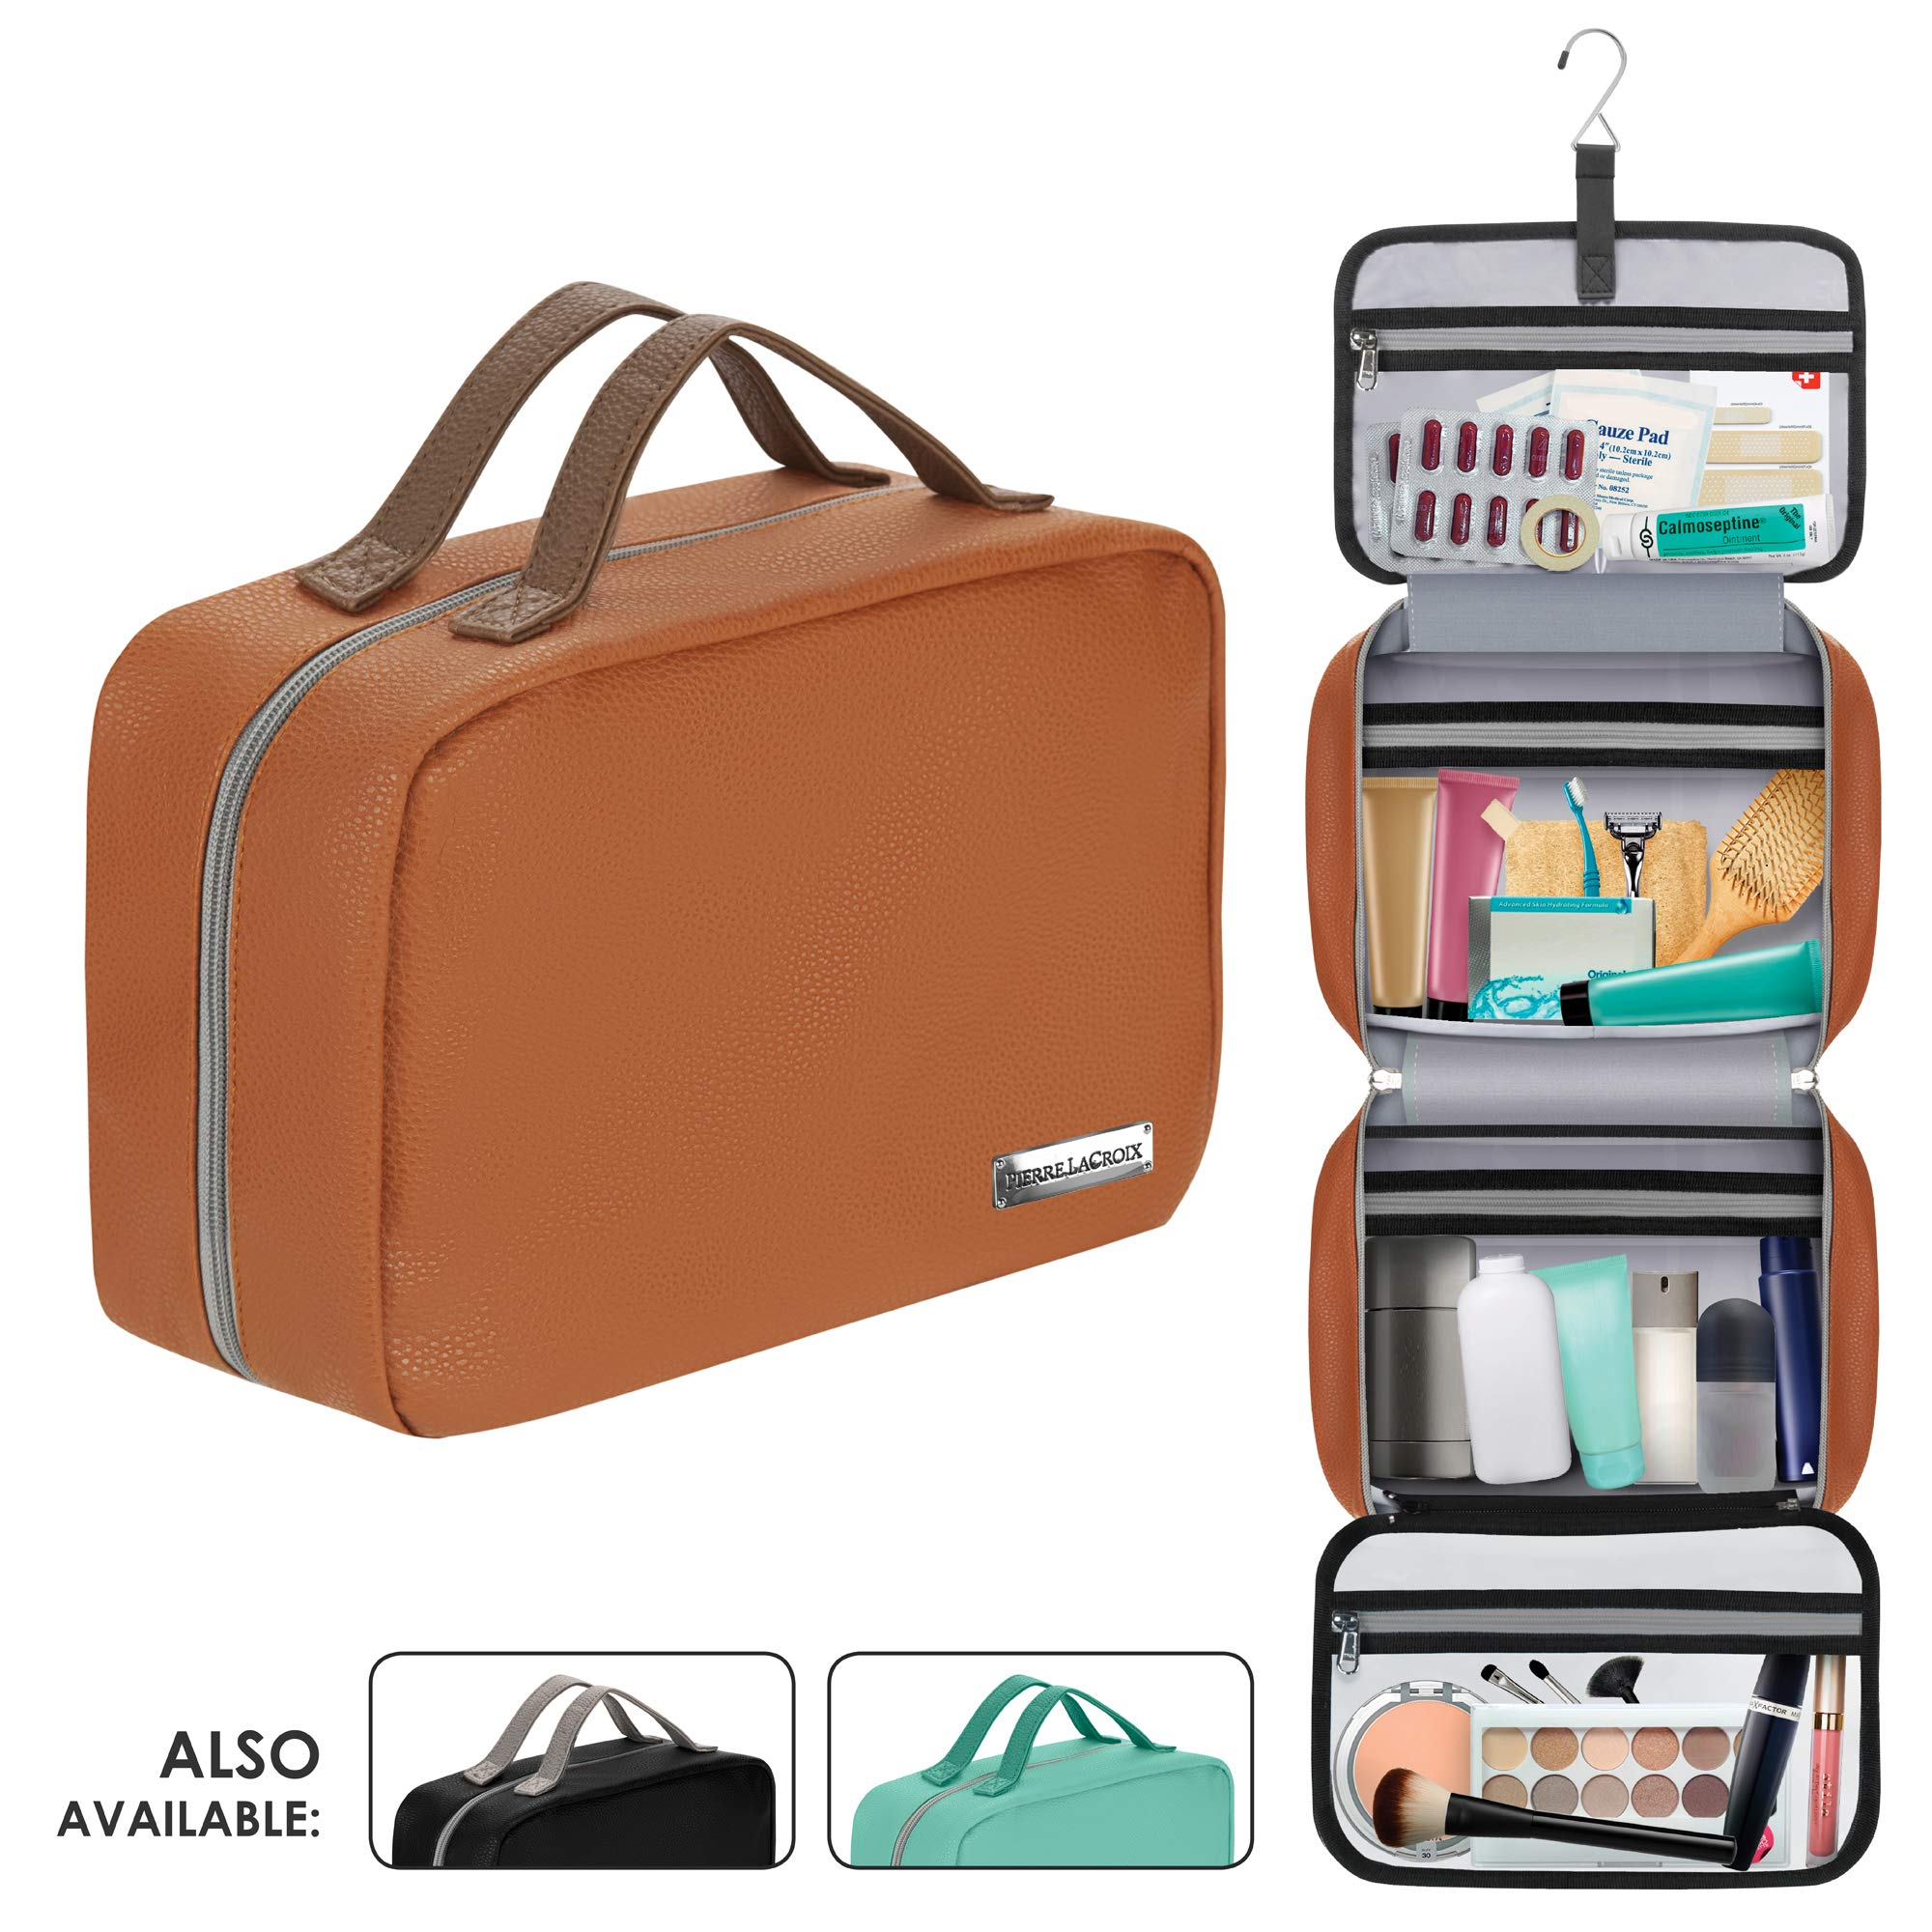 90cbfdc7c662 Cruelty-Free Leather Hanging Travel Toiletry Bag for Men and Women